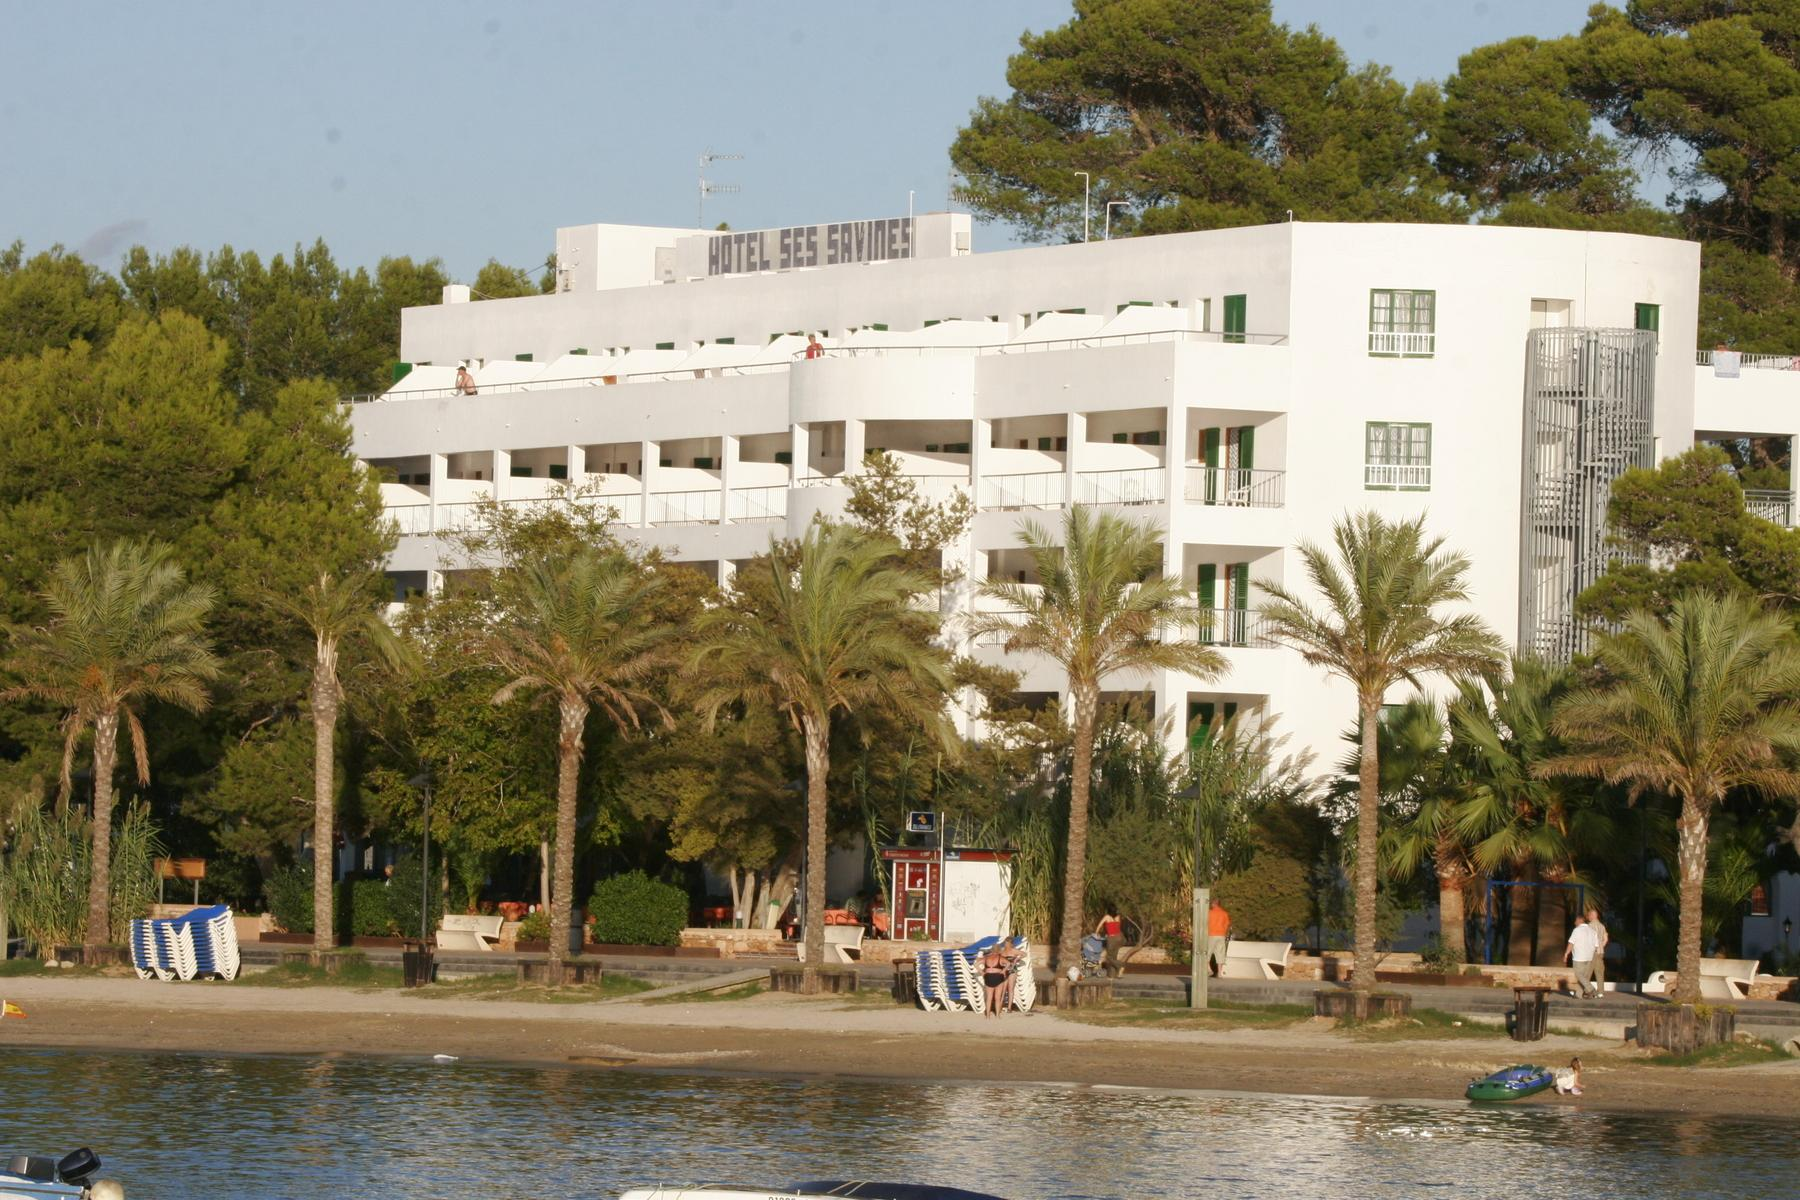 Ses Savines Hotel in San Antonio, Ibiza, Balearic Islands